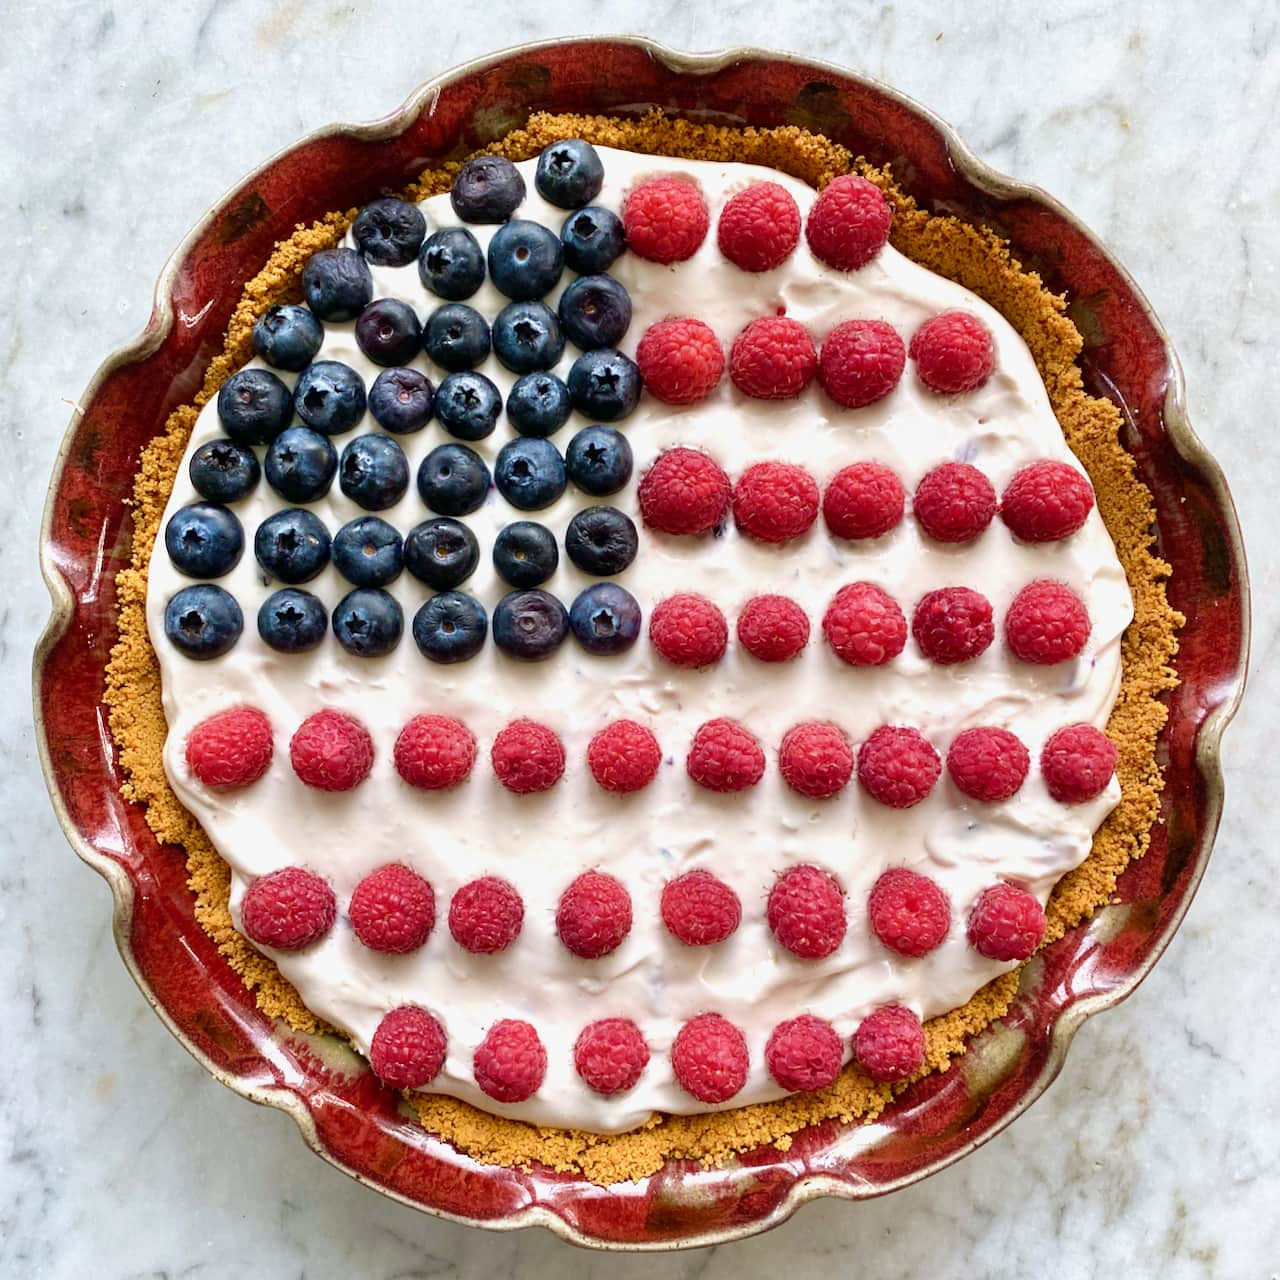 pie with flag decorations on top out of raspberries and blueberries